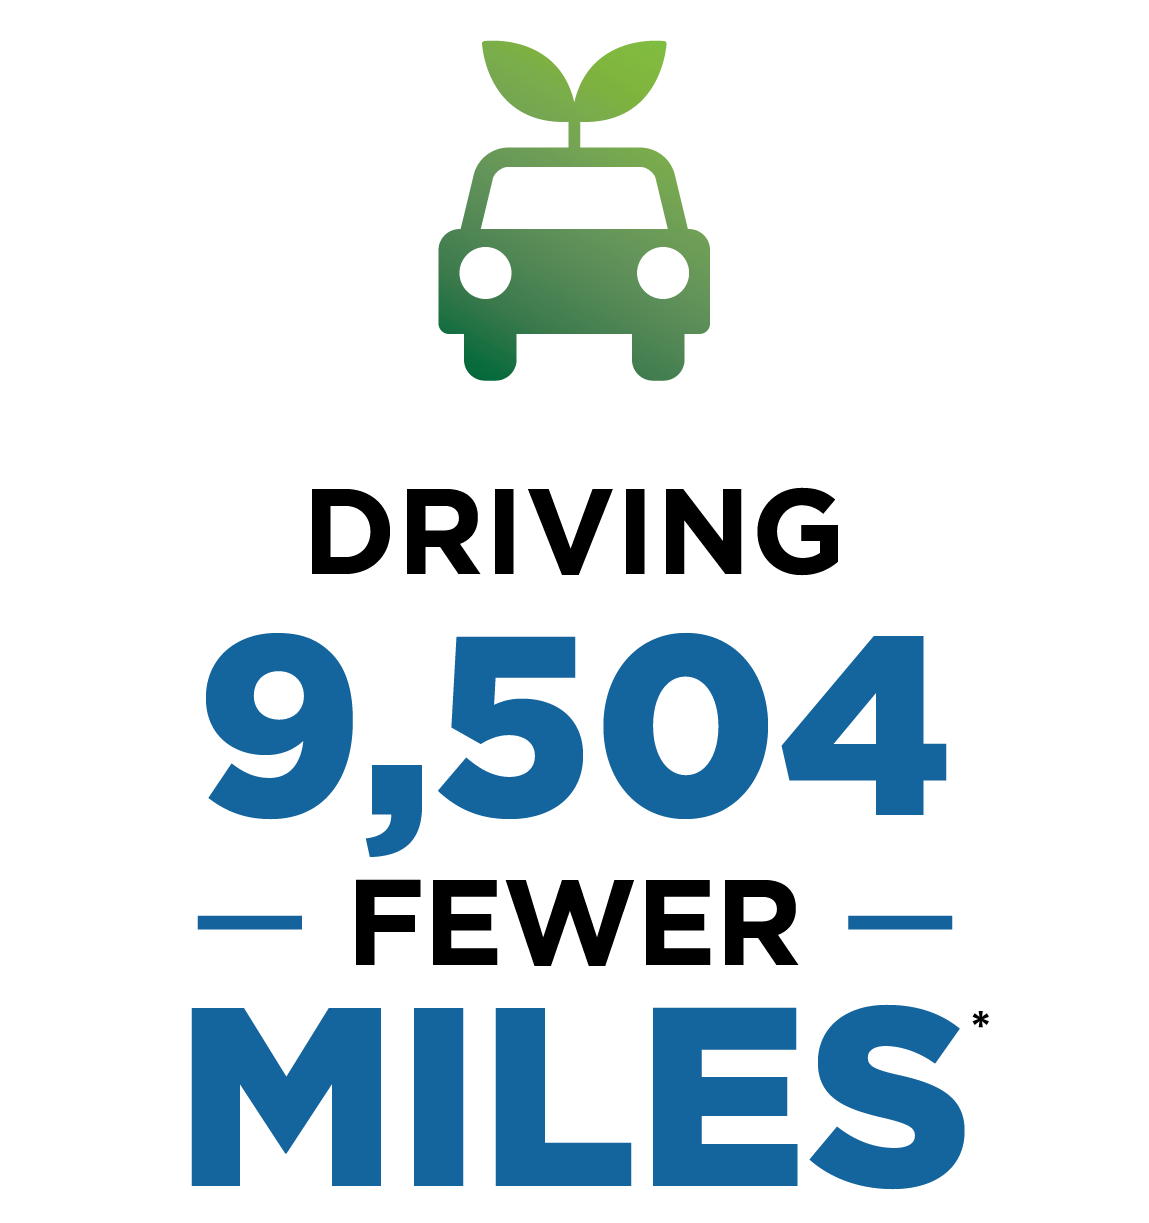 Driving 9,504 fewer miles